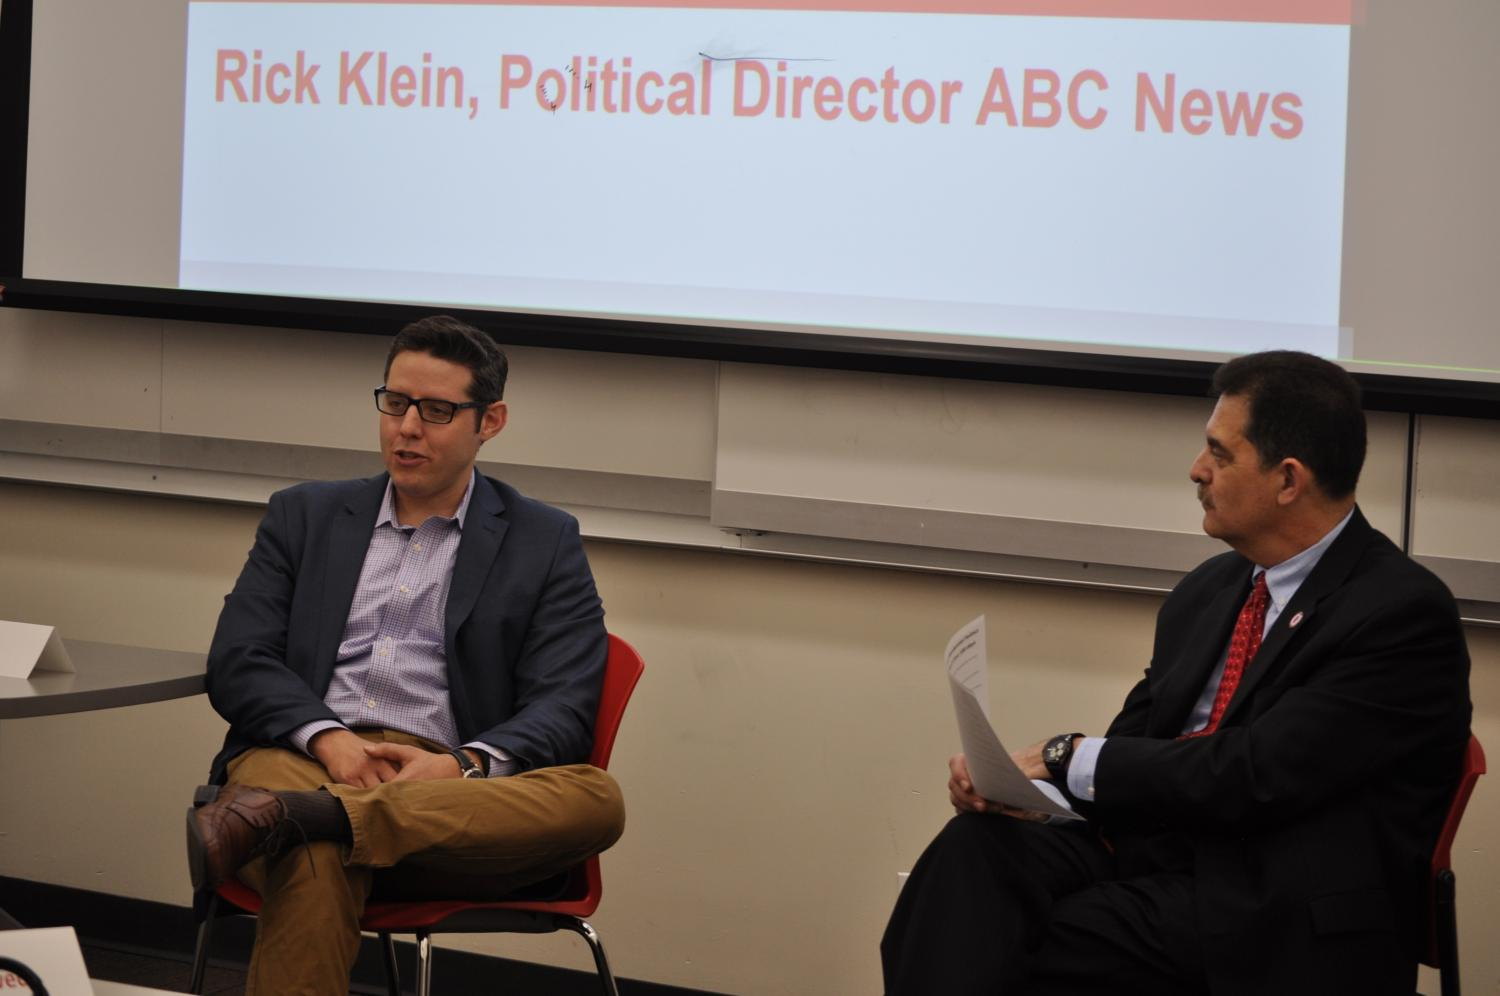 Professor Michael Rizzo, right, moderated the question-and-answer session with Rick Klein.